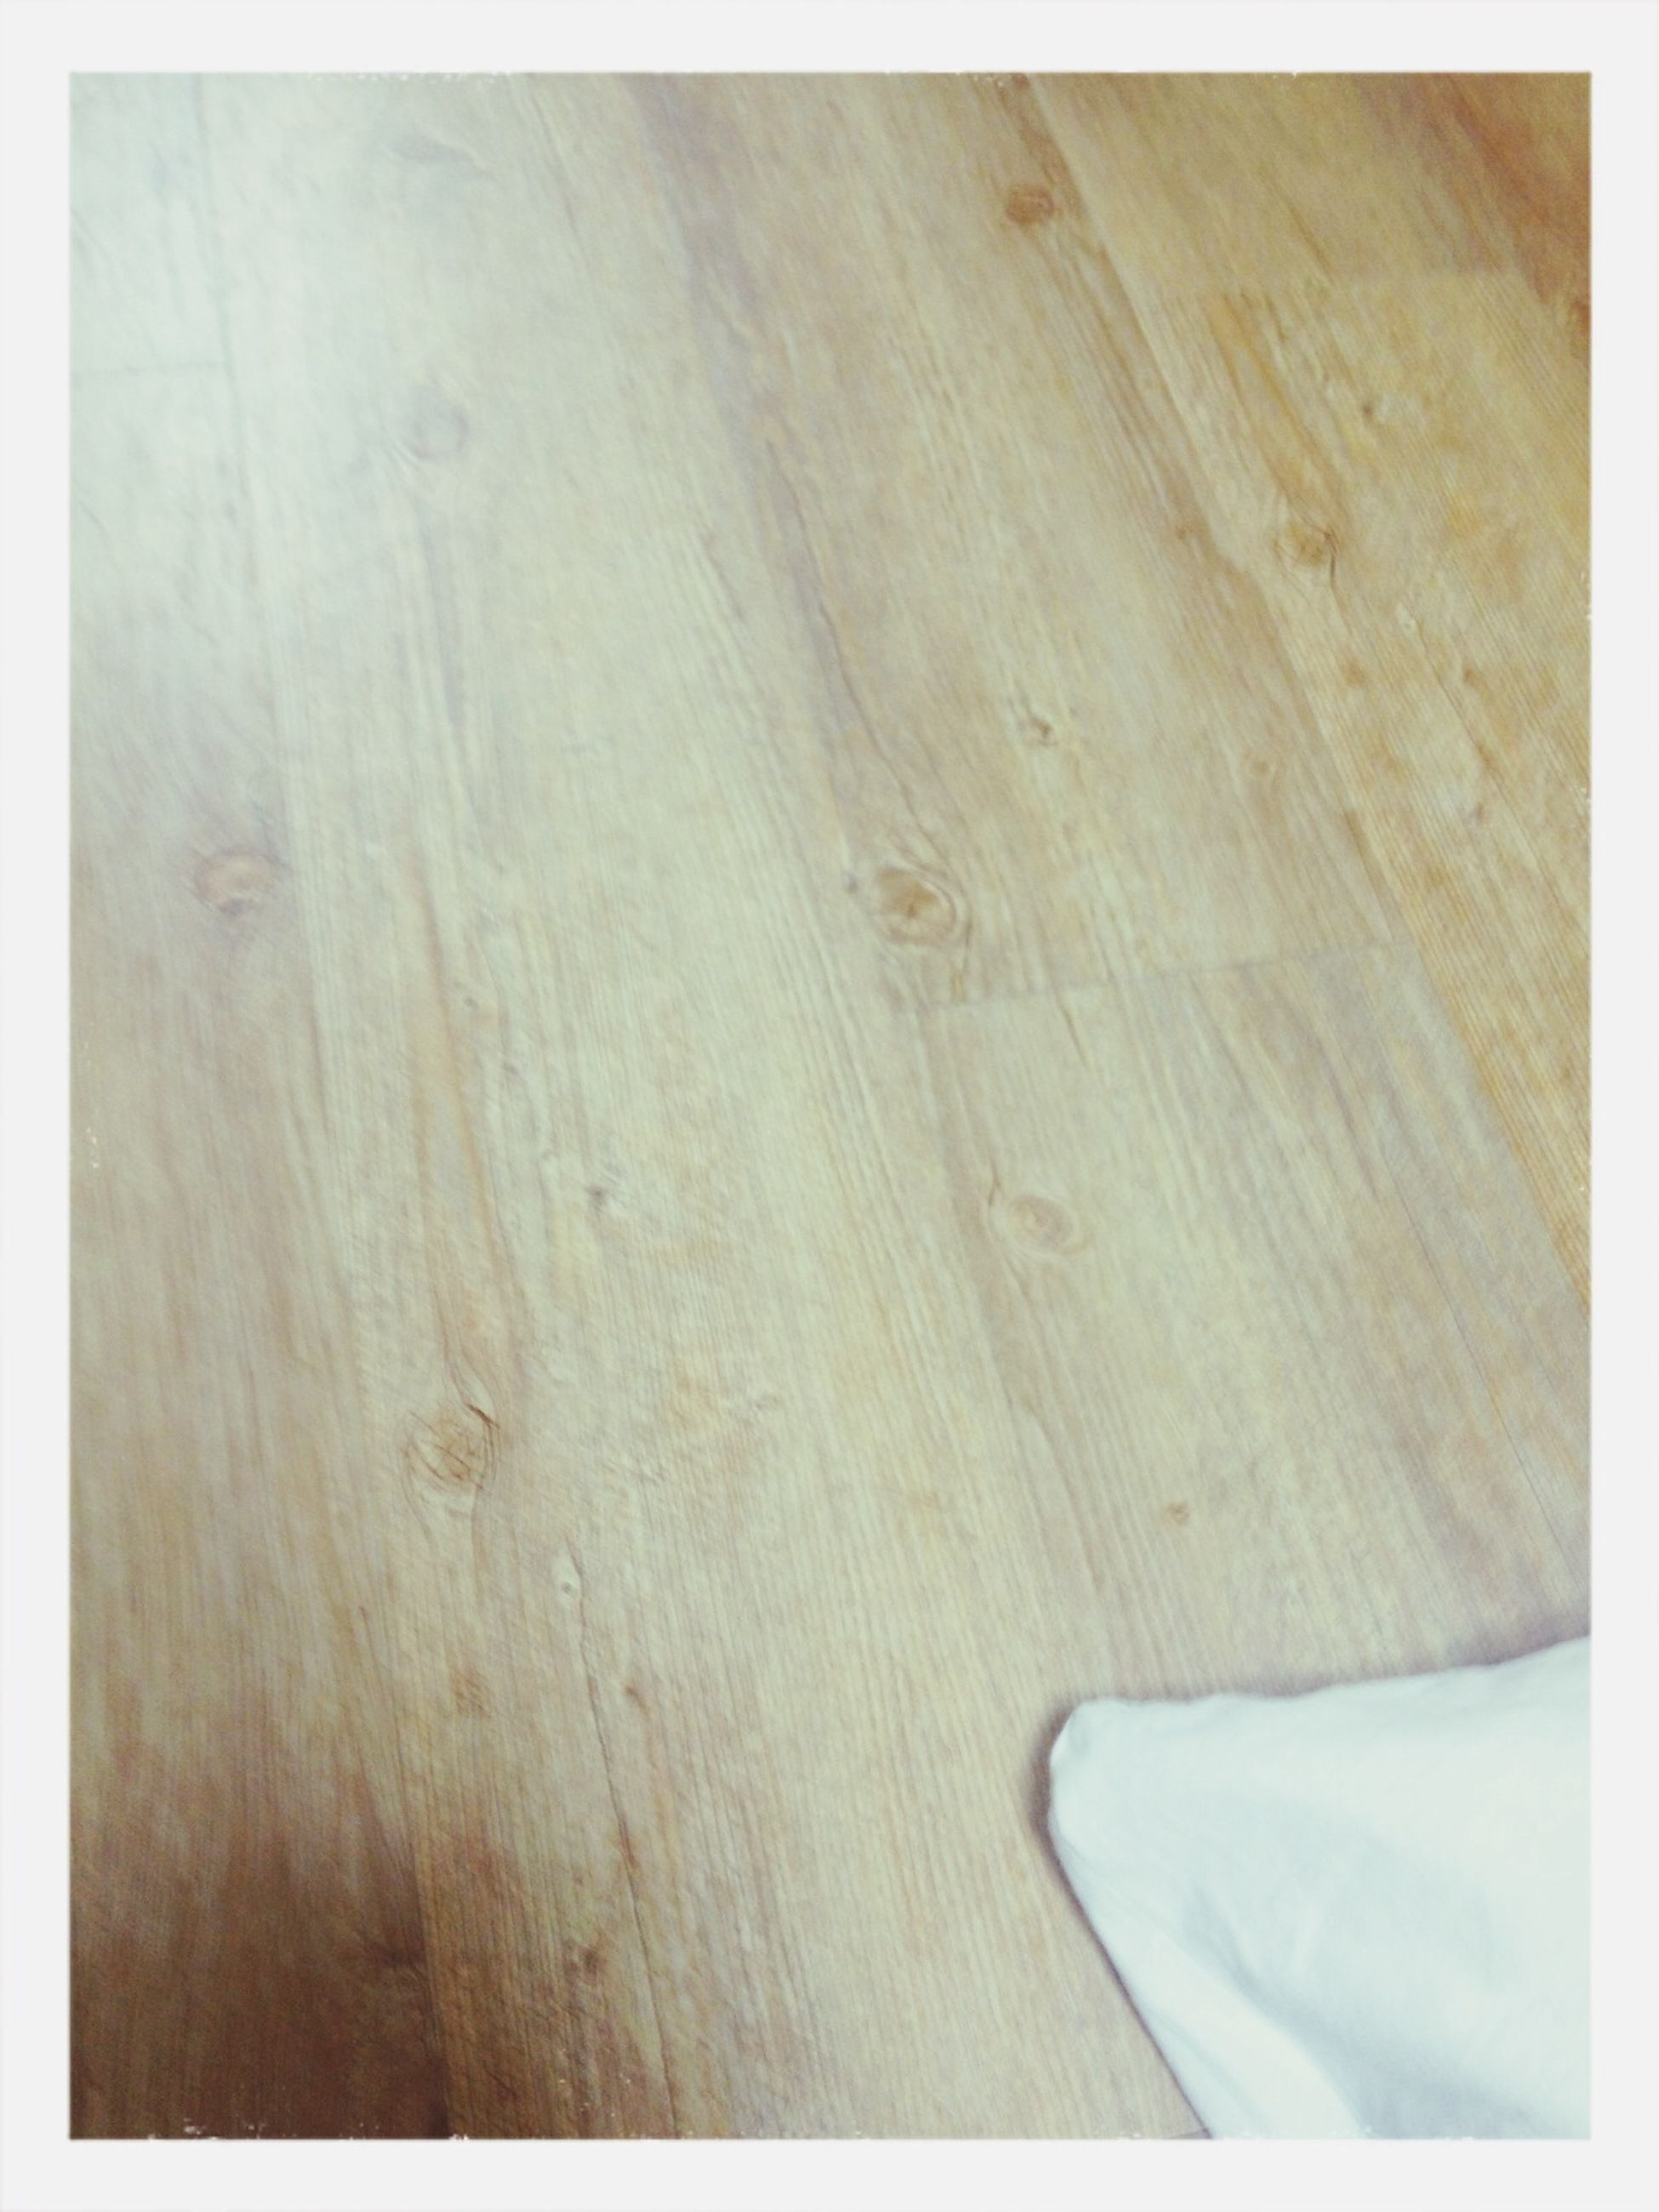 wood - material, transfer print, wooden, full frame, auto post production filter, wood, textured, backgrounds, plank, high angle view, close-up, brown, pattern, indoors, no people, day, hardwood floor, sunlight, flooring